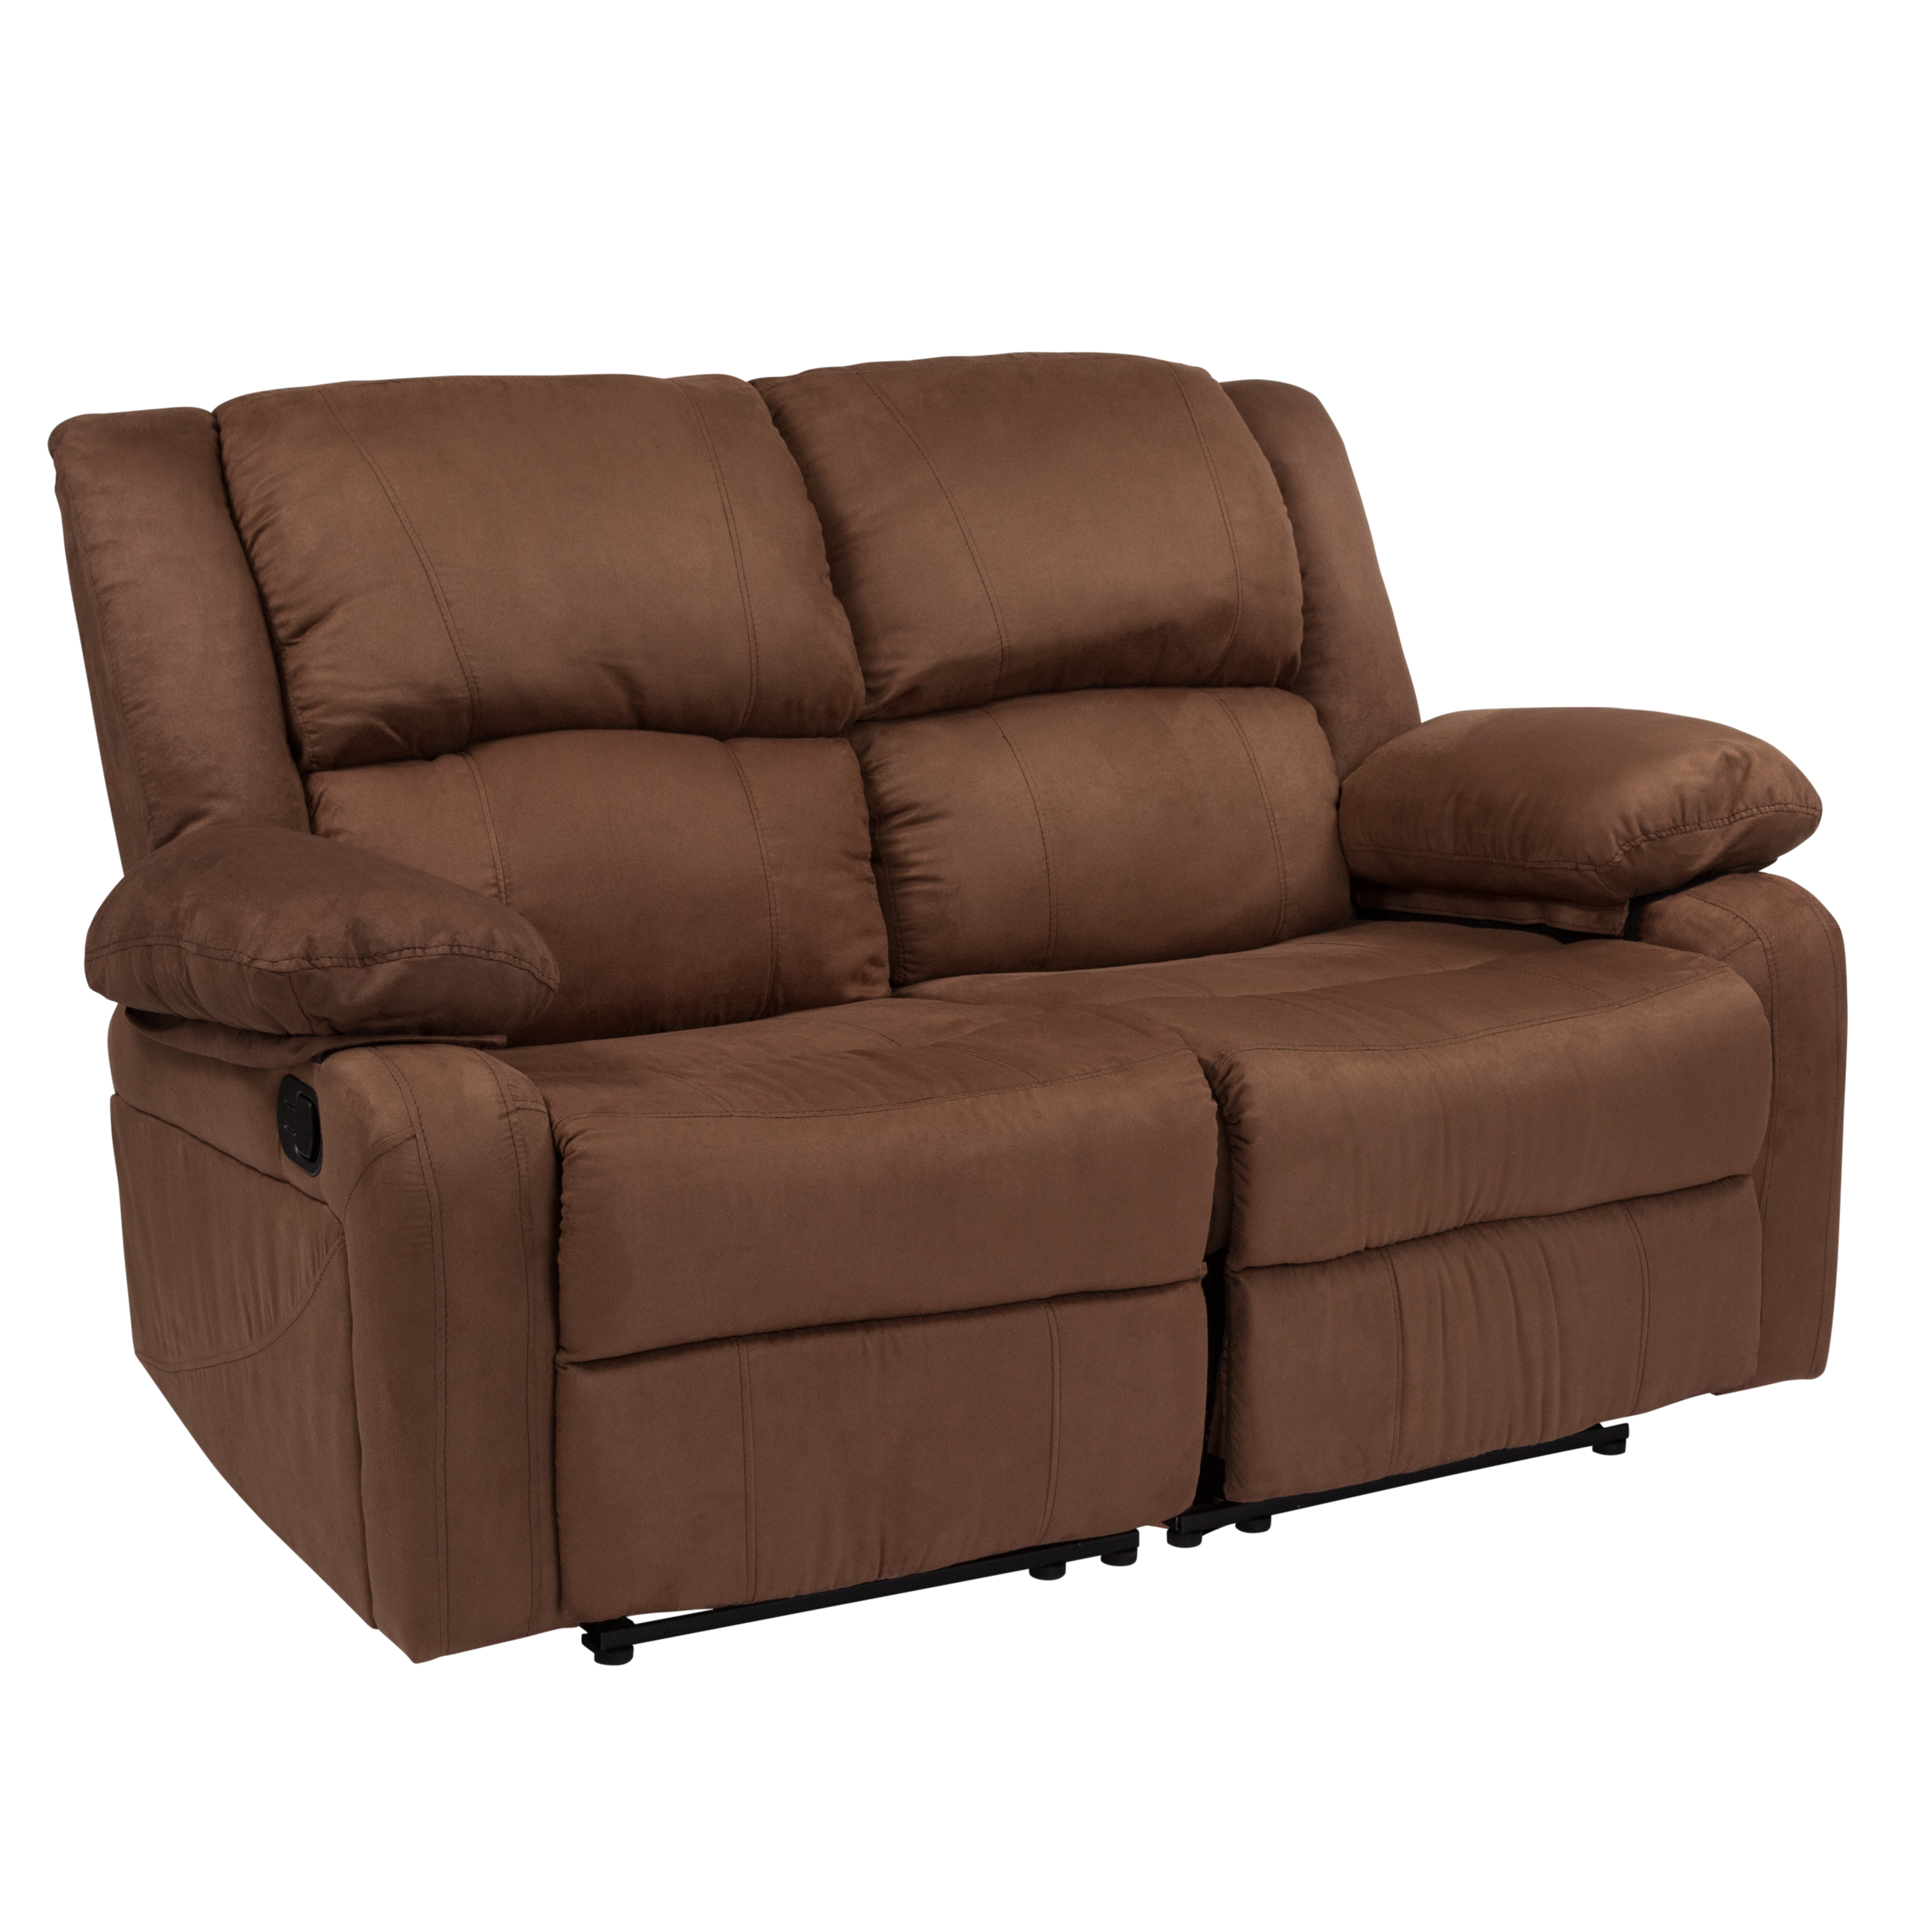 Harmony Series Flash Furniture Chocolate Brown Microfiber Loveseat with Two Built-In Recliners